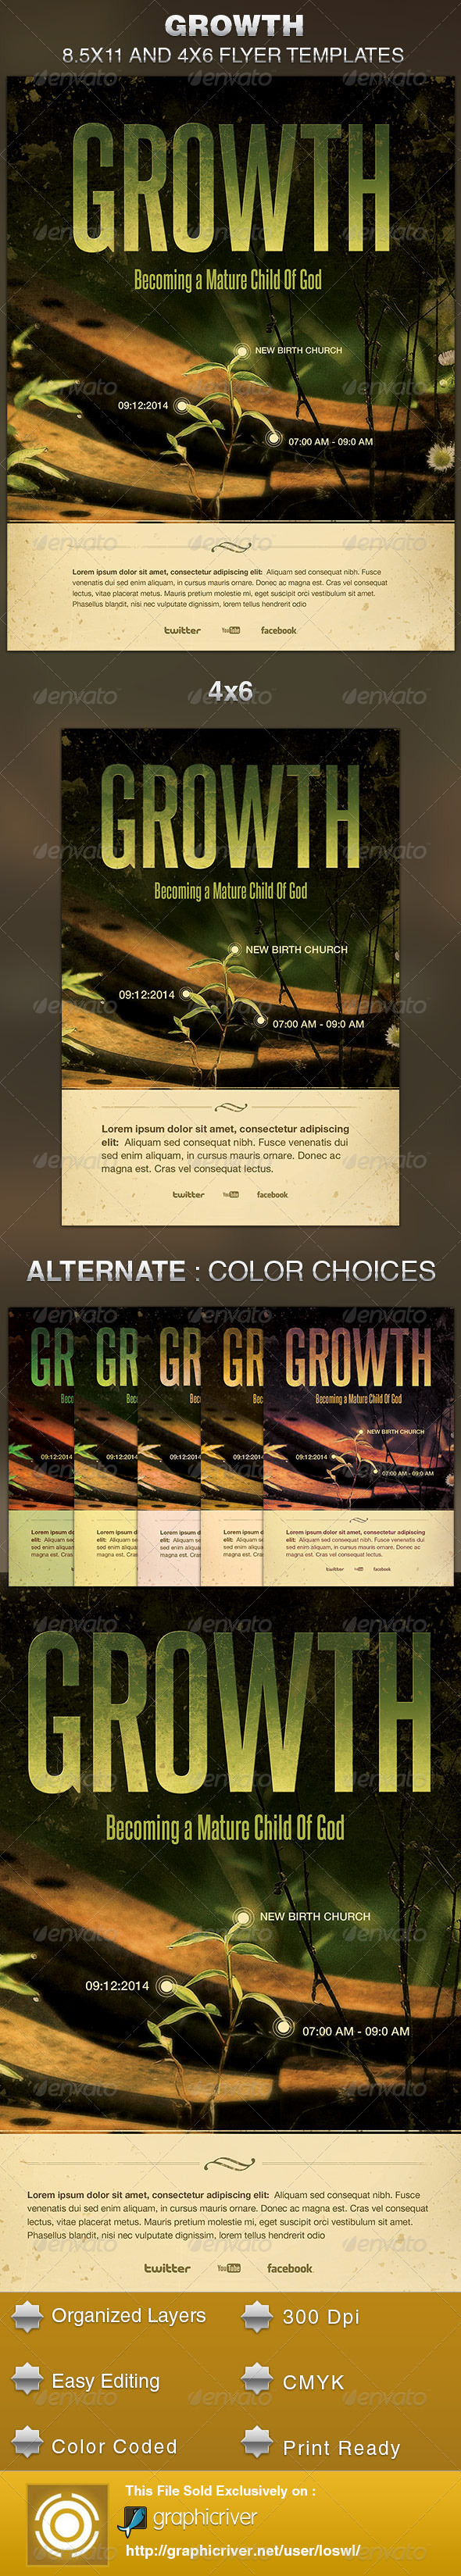 Growth Church Flyer Template - Church Flyers